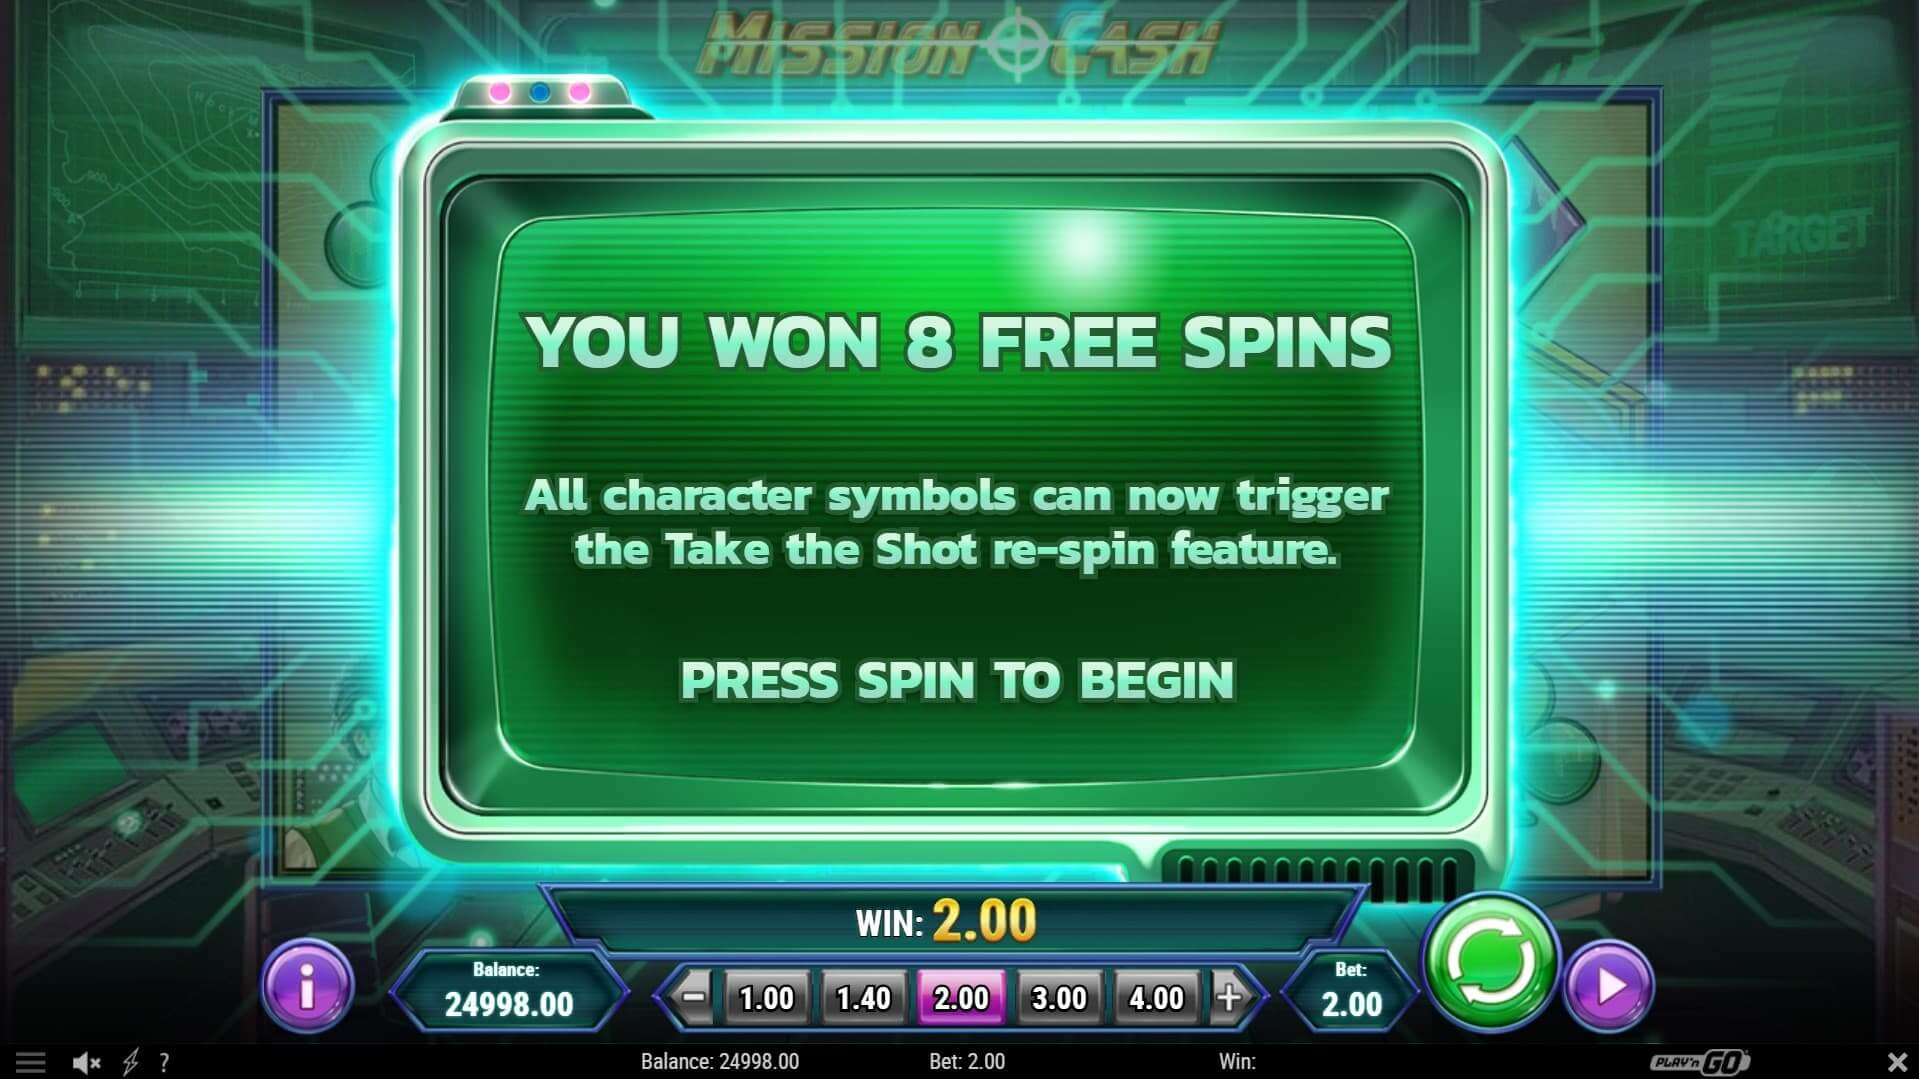 Win big time at Mission Cash